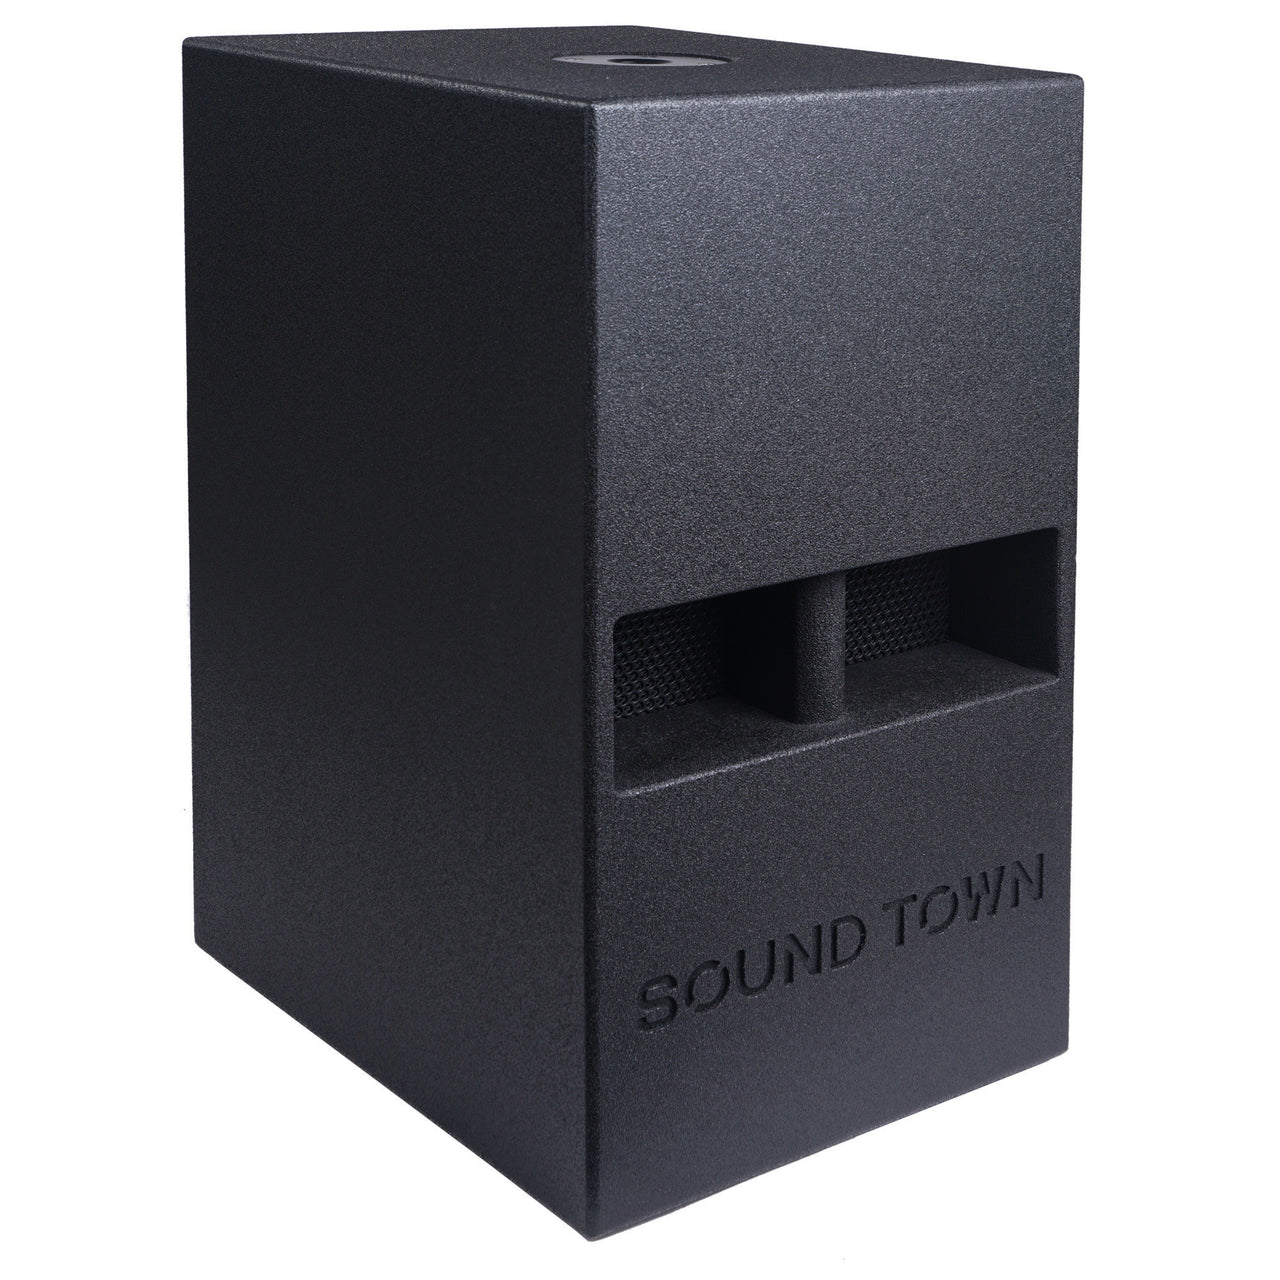 "CARME-112S<br/>CARME Series 12"" 700W Passive PA/DJ Subwoofer with Folded Horn Design, Black"